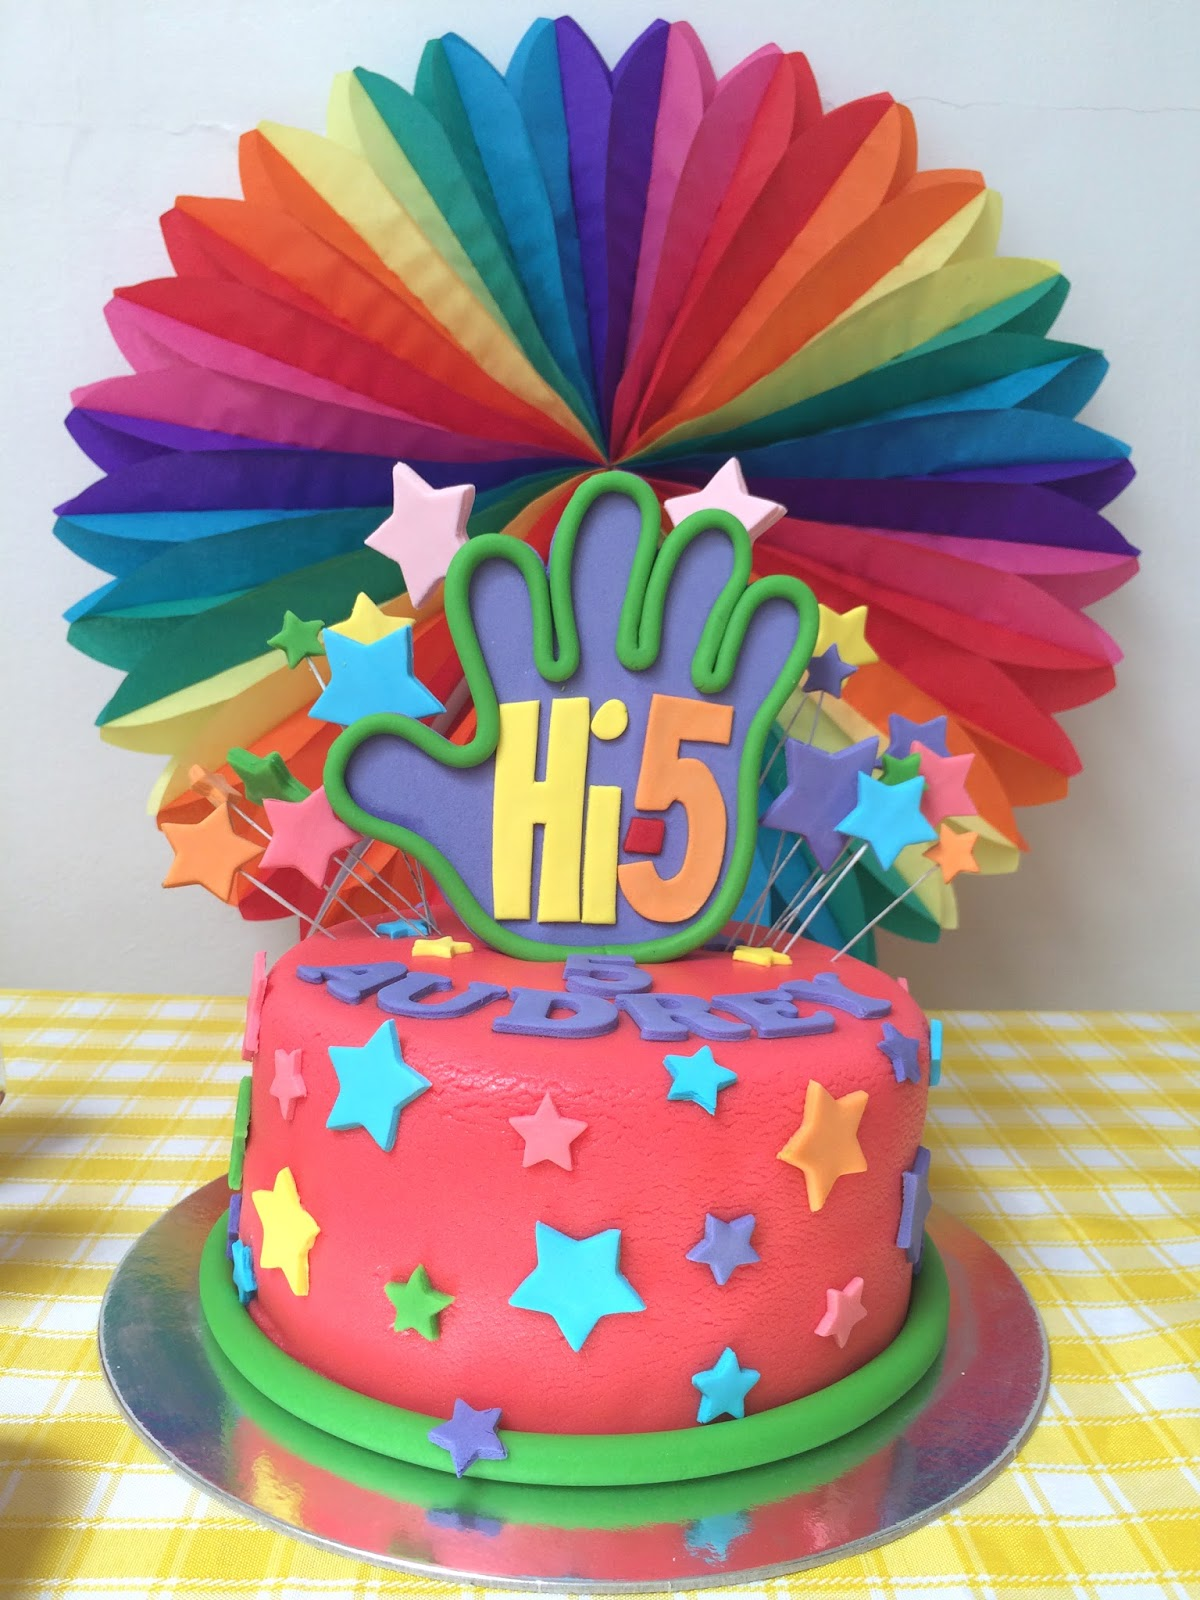 We Super Love This Cake By Sweets Cha Everything Turned Out Perfect From The Butter Inside And Stars Hi5 Hand Logo Outside